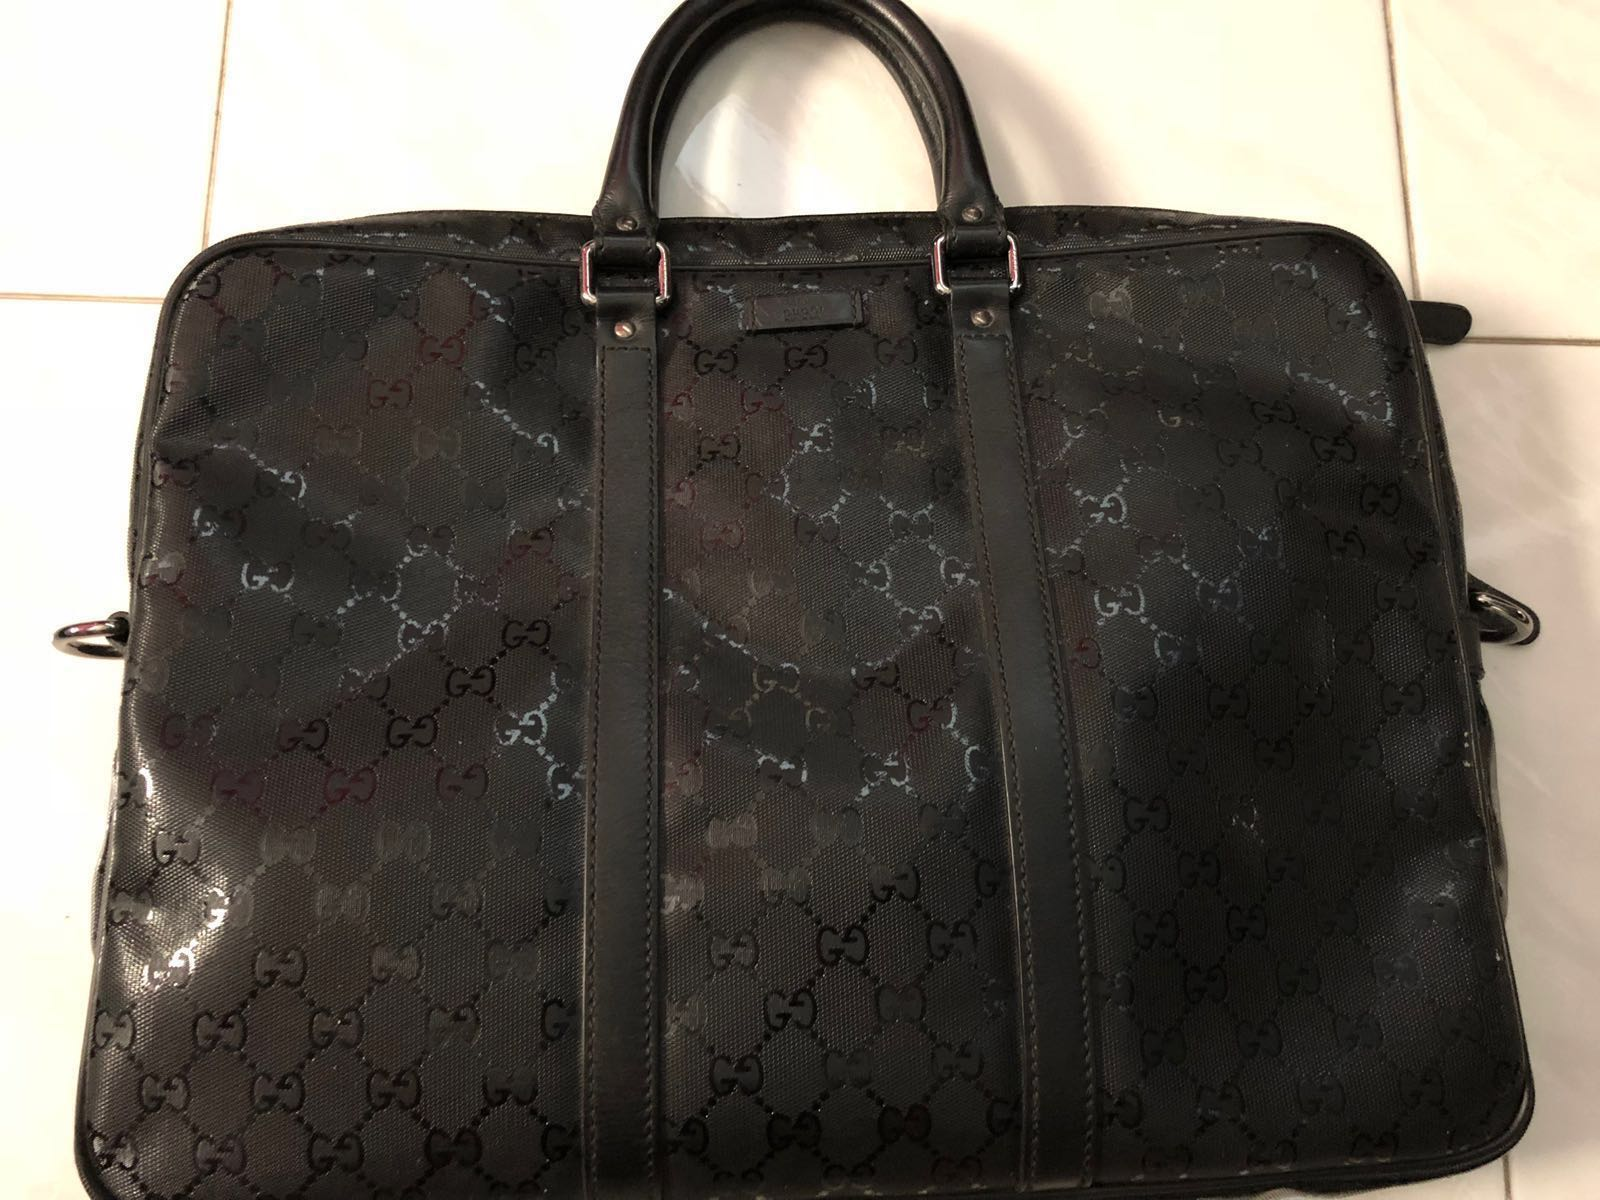 31702b200d09 Gucci Men's briefcase, Luxury, Bags & Wallets, Briefcases on Carousell